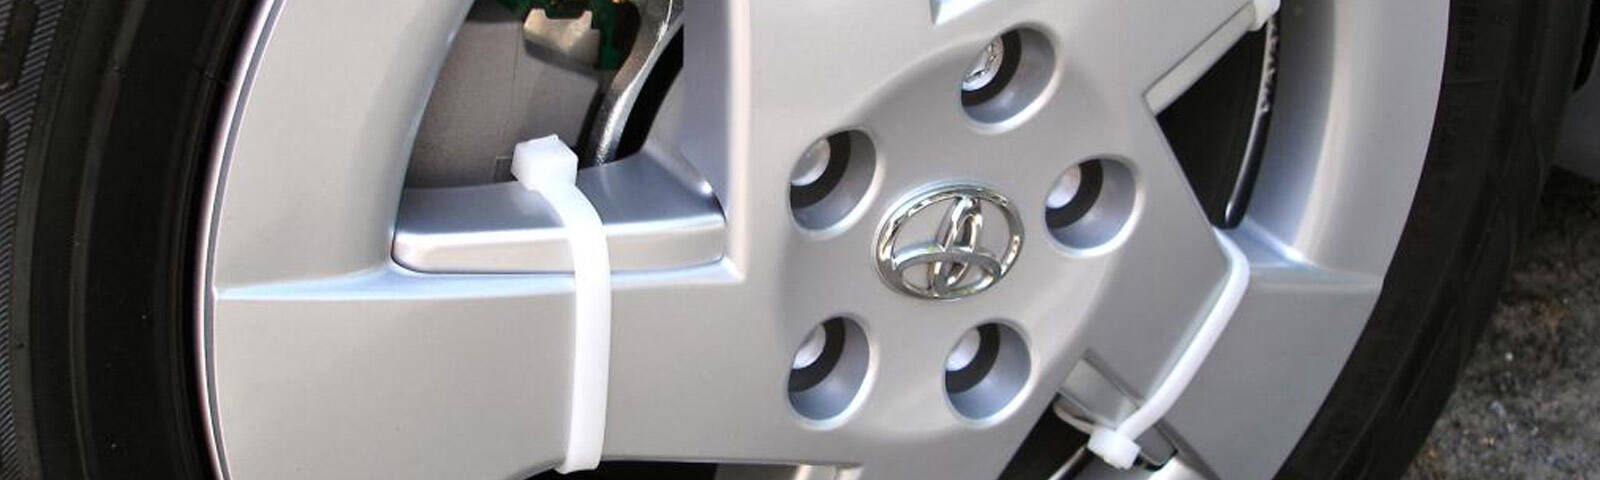 What are the best cable ties to use as wheel trims?